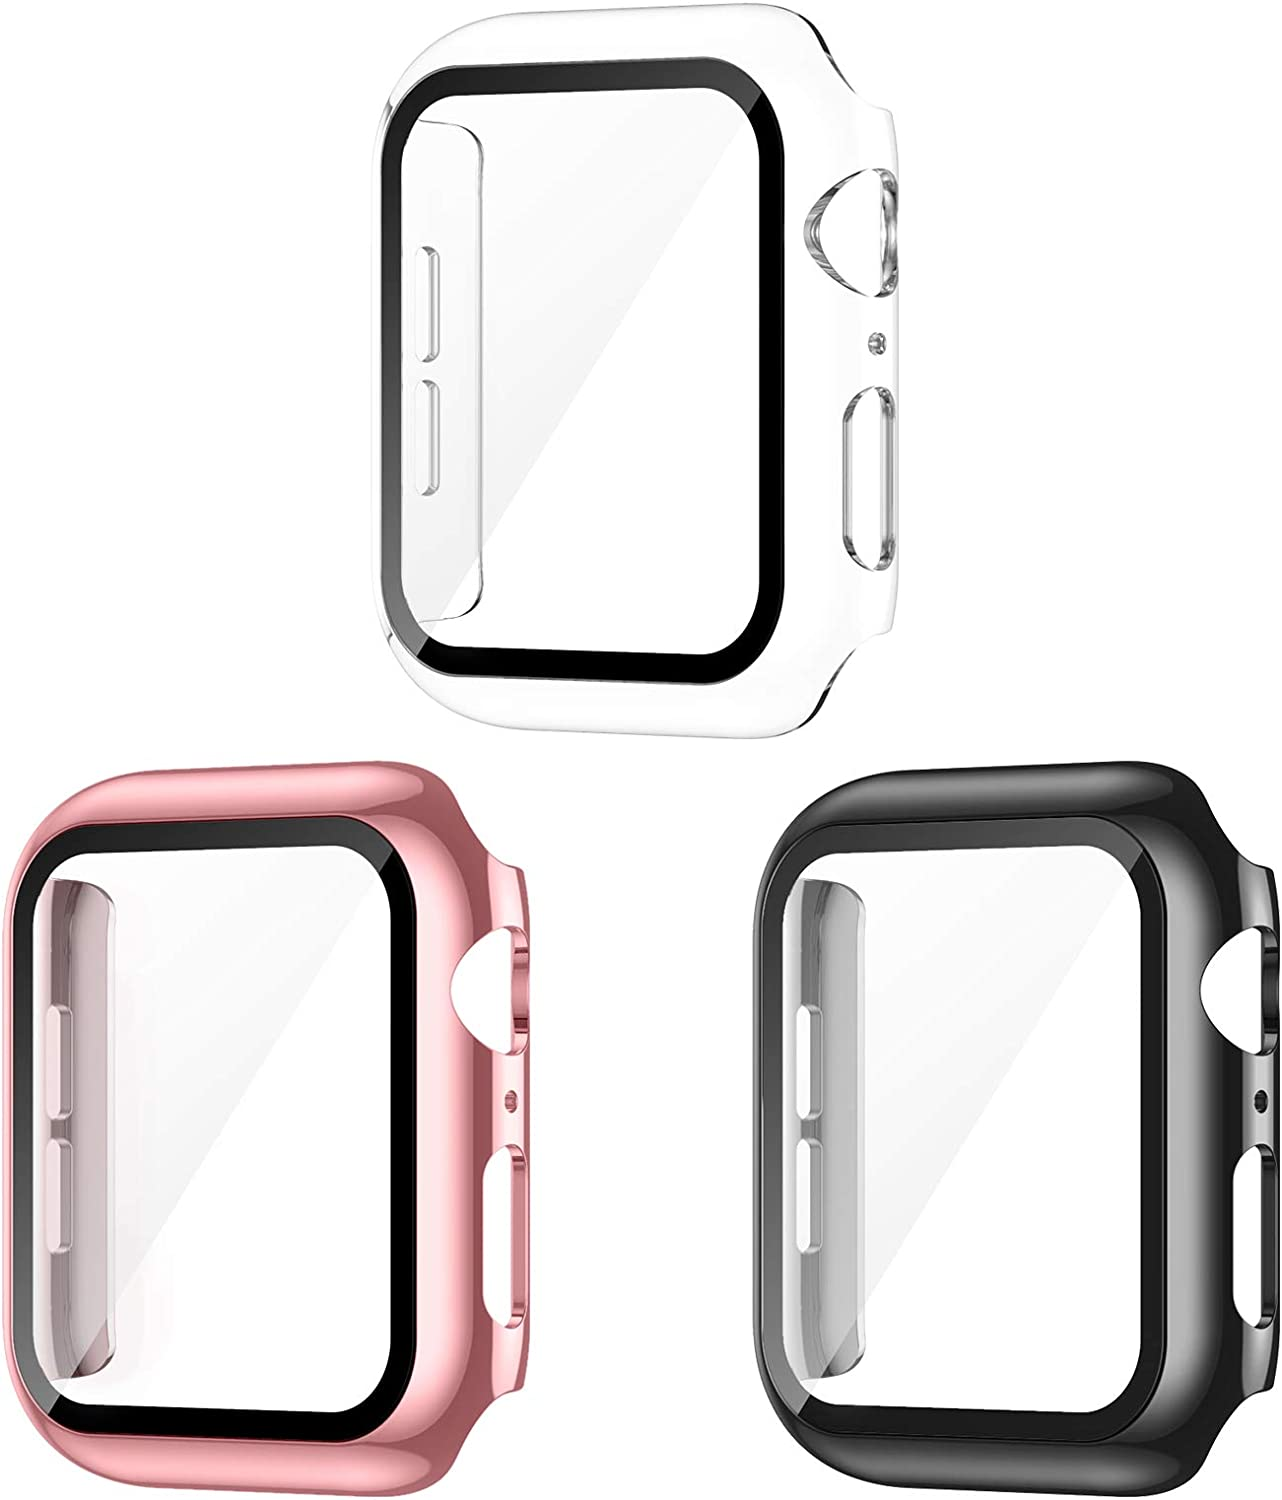 AVIDDA 3 Pack Case with Tempered Glass Screen Protector for Apple Watch 44mm Series 6/5/4/SE, Slim Guard Bumper Full Coverage HD Ultra-Thin Cover Compatible with iWatch 44mm